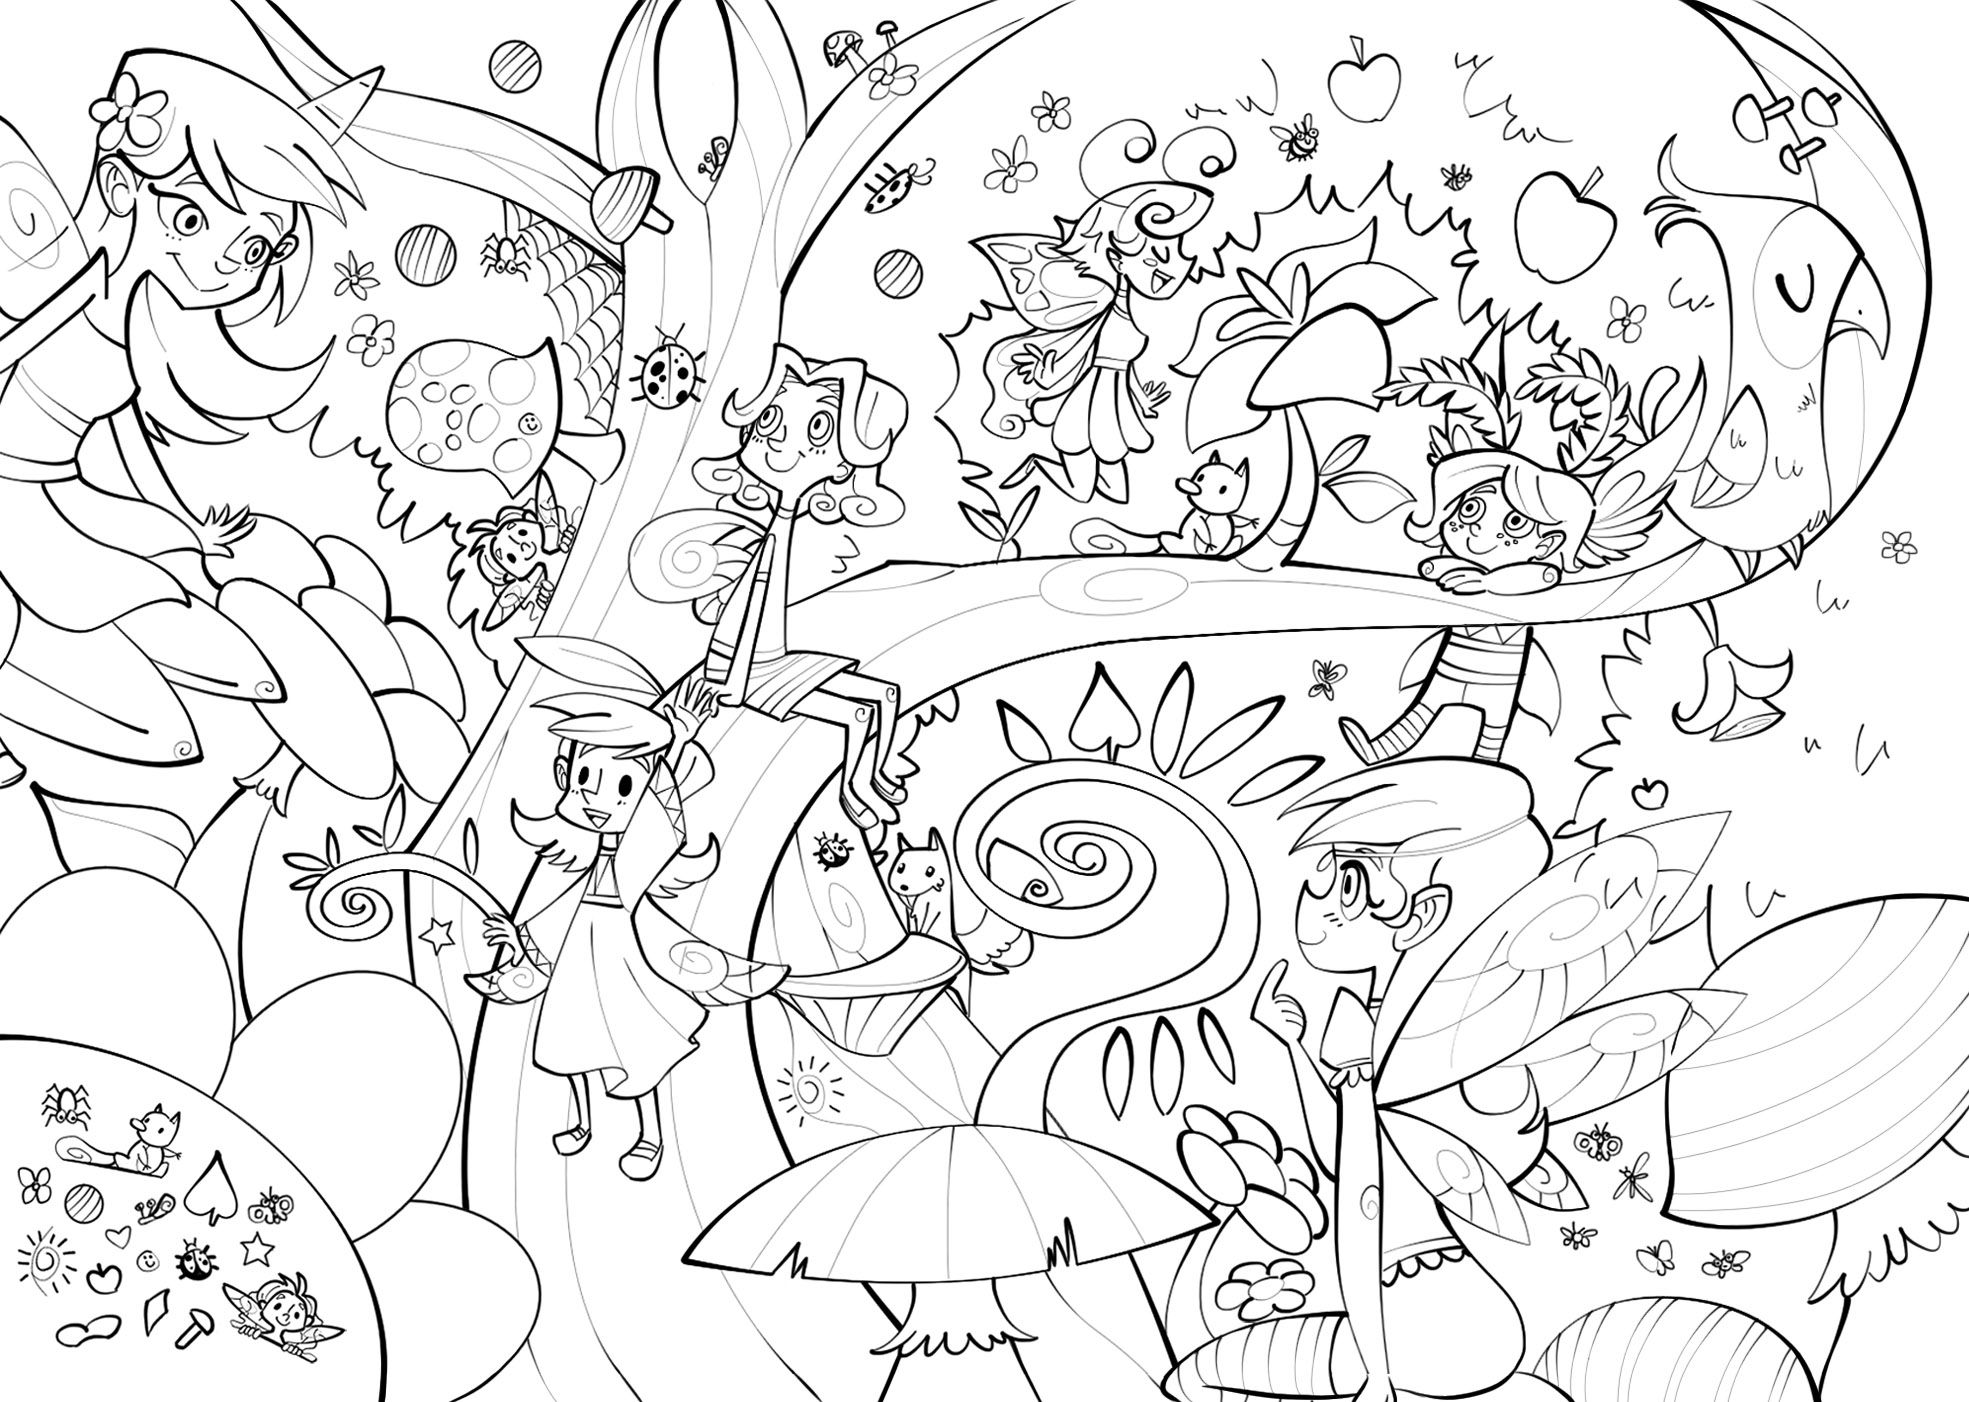 Fairy Land Page From A Fairy Tale Themed Activity Book One Of The Non Colored Pages Might